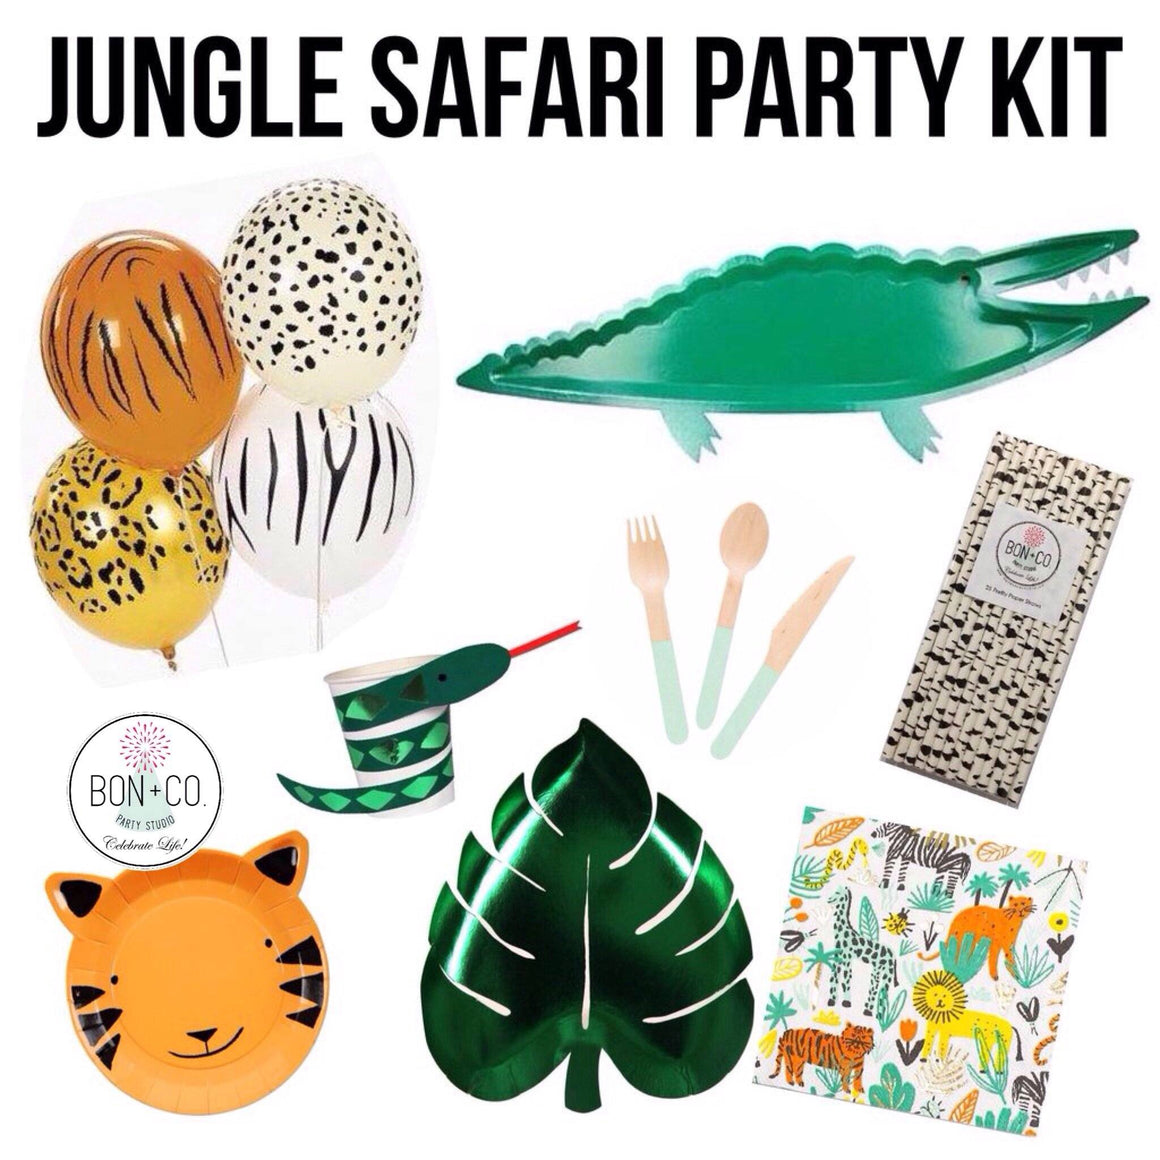 PARTY KIT - JUNGLE SAFARI, Party Kit, Bon + Co. Party Studio - Bon + Co. Party Studio